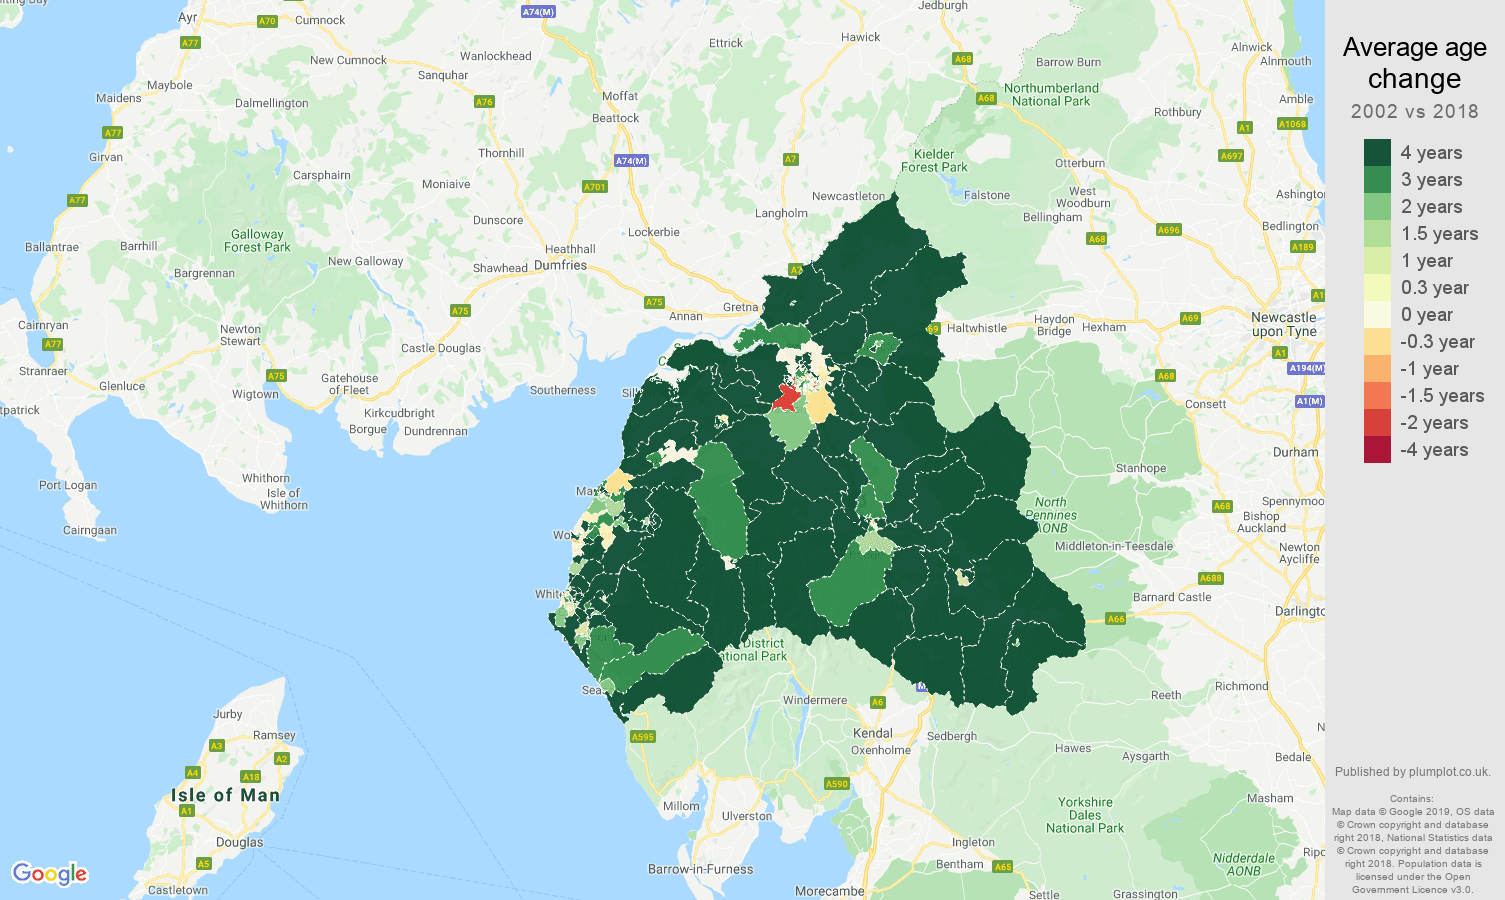 Carlisle average age change map